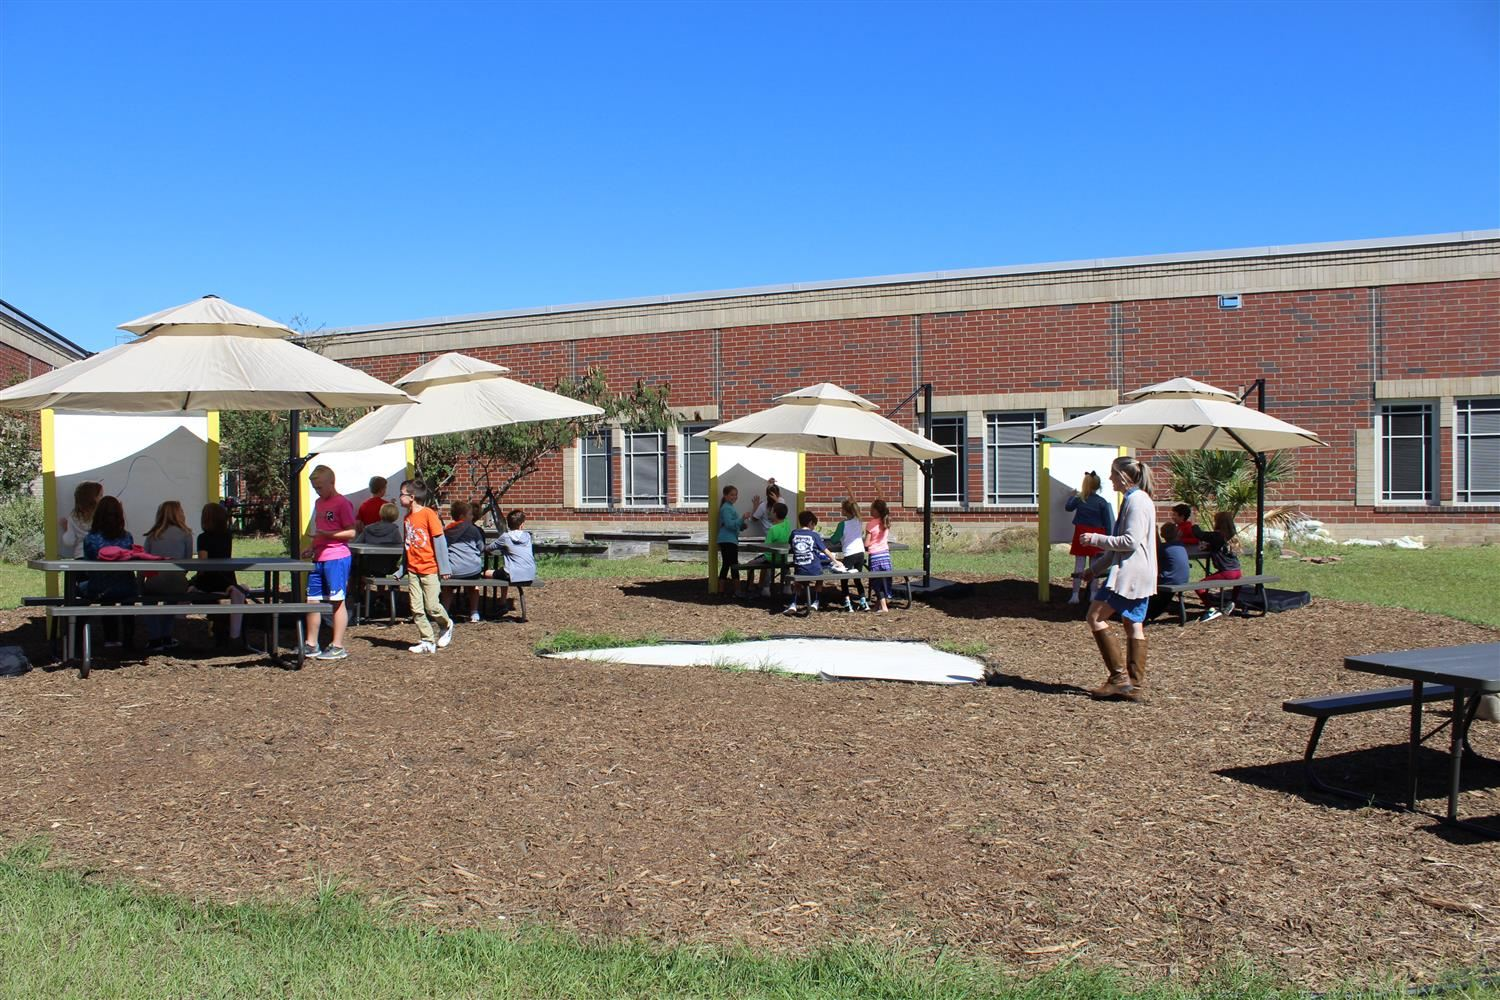 students learning in outdoor classroom